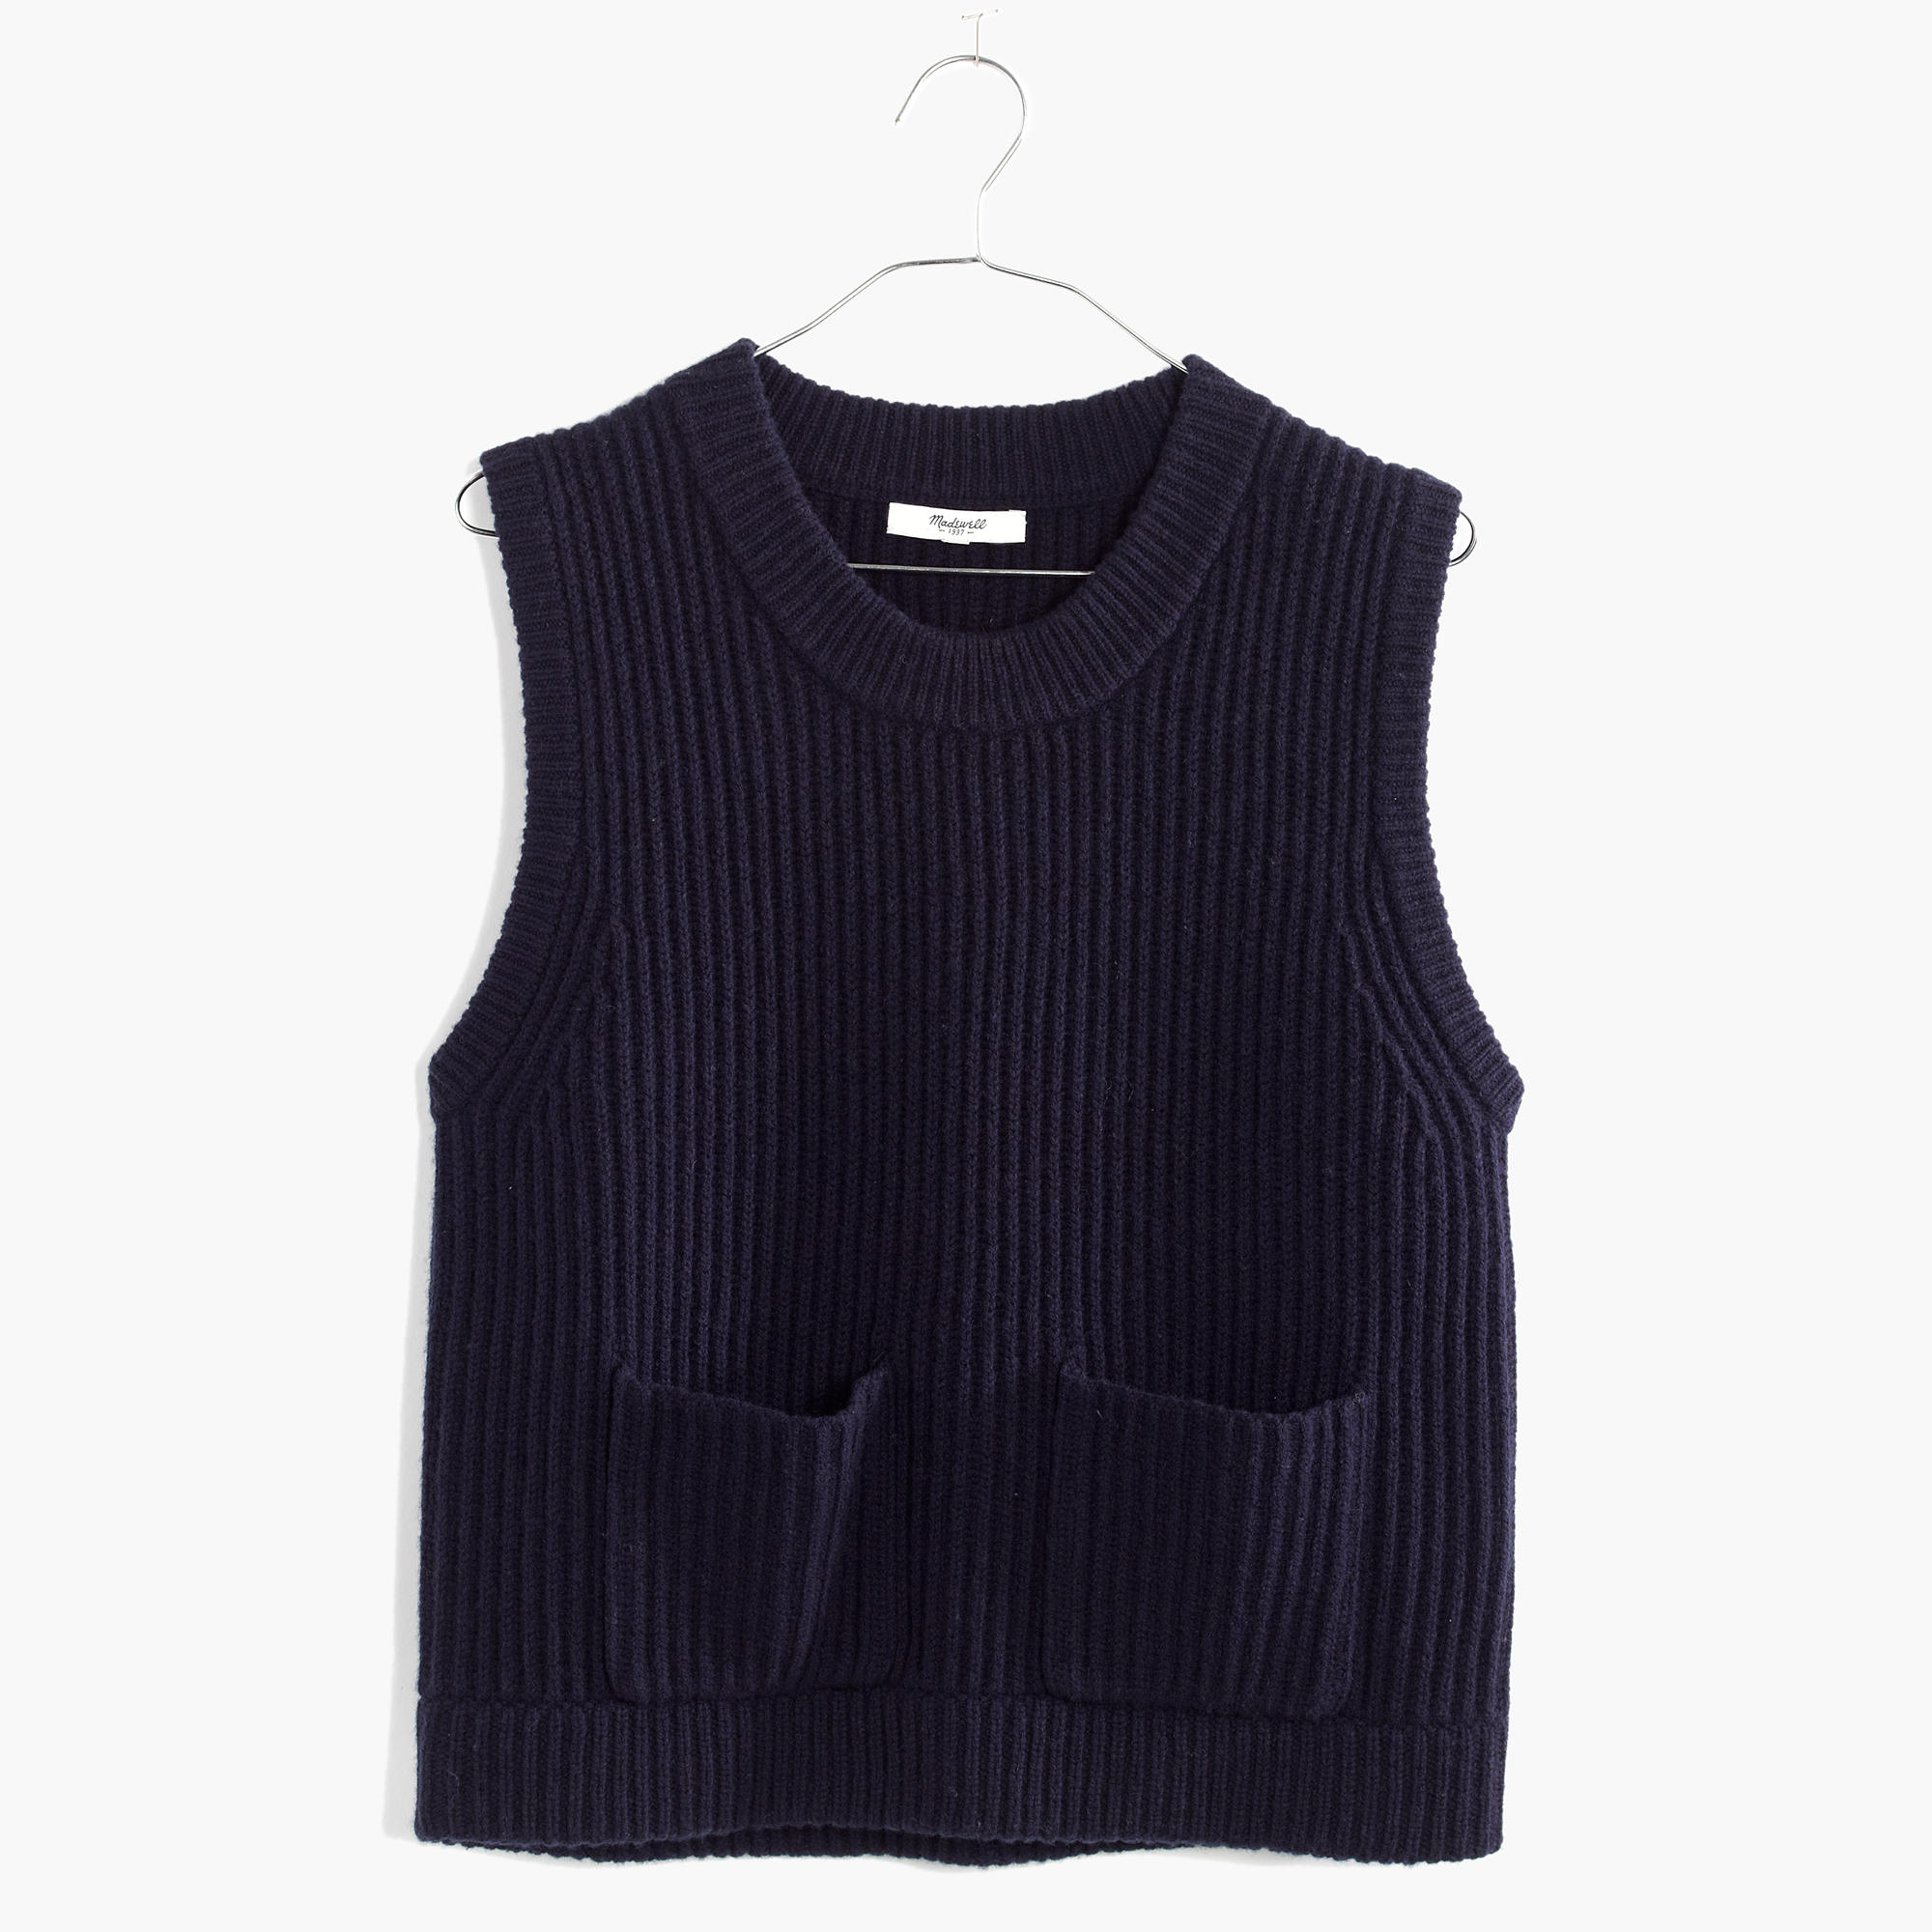 Merino Ribbed Sweater-Vest : shopmadewell pullovers | Madewell